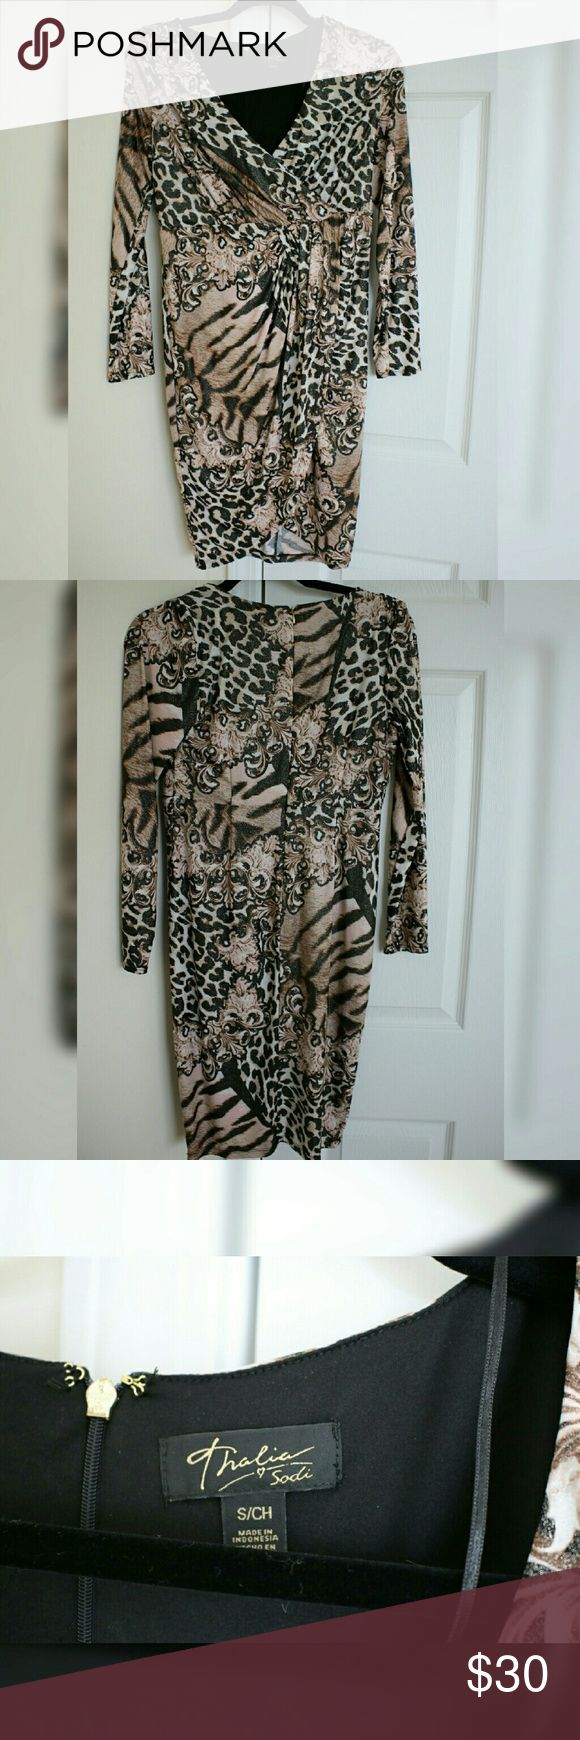 Animal print thalia sodi dress Animal print long sleeve dress with zipper closure. Only worn once. Excellent condition! Macy's Dresses Asymmetrical